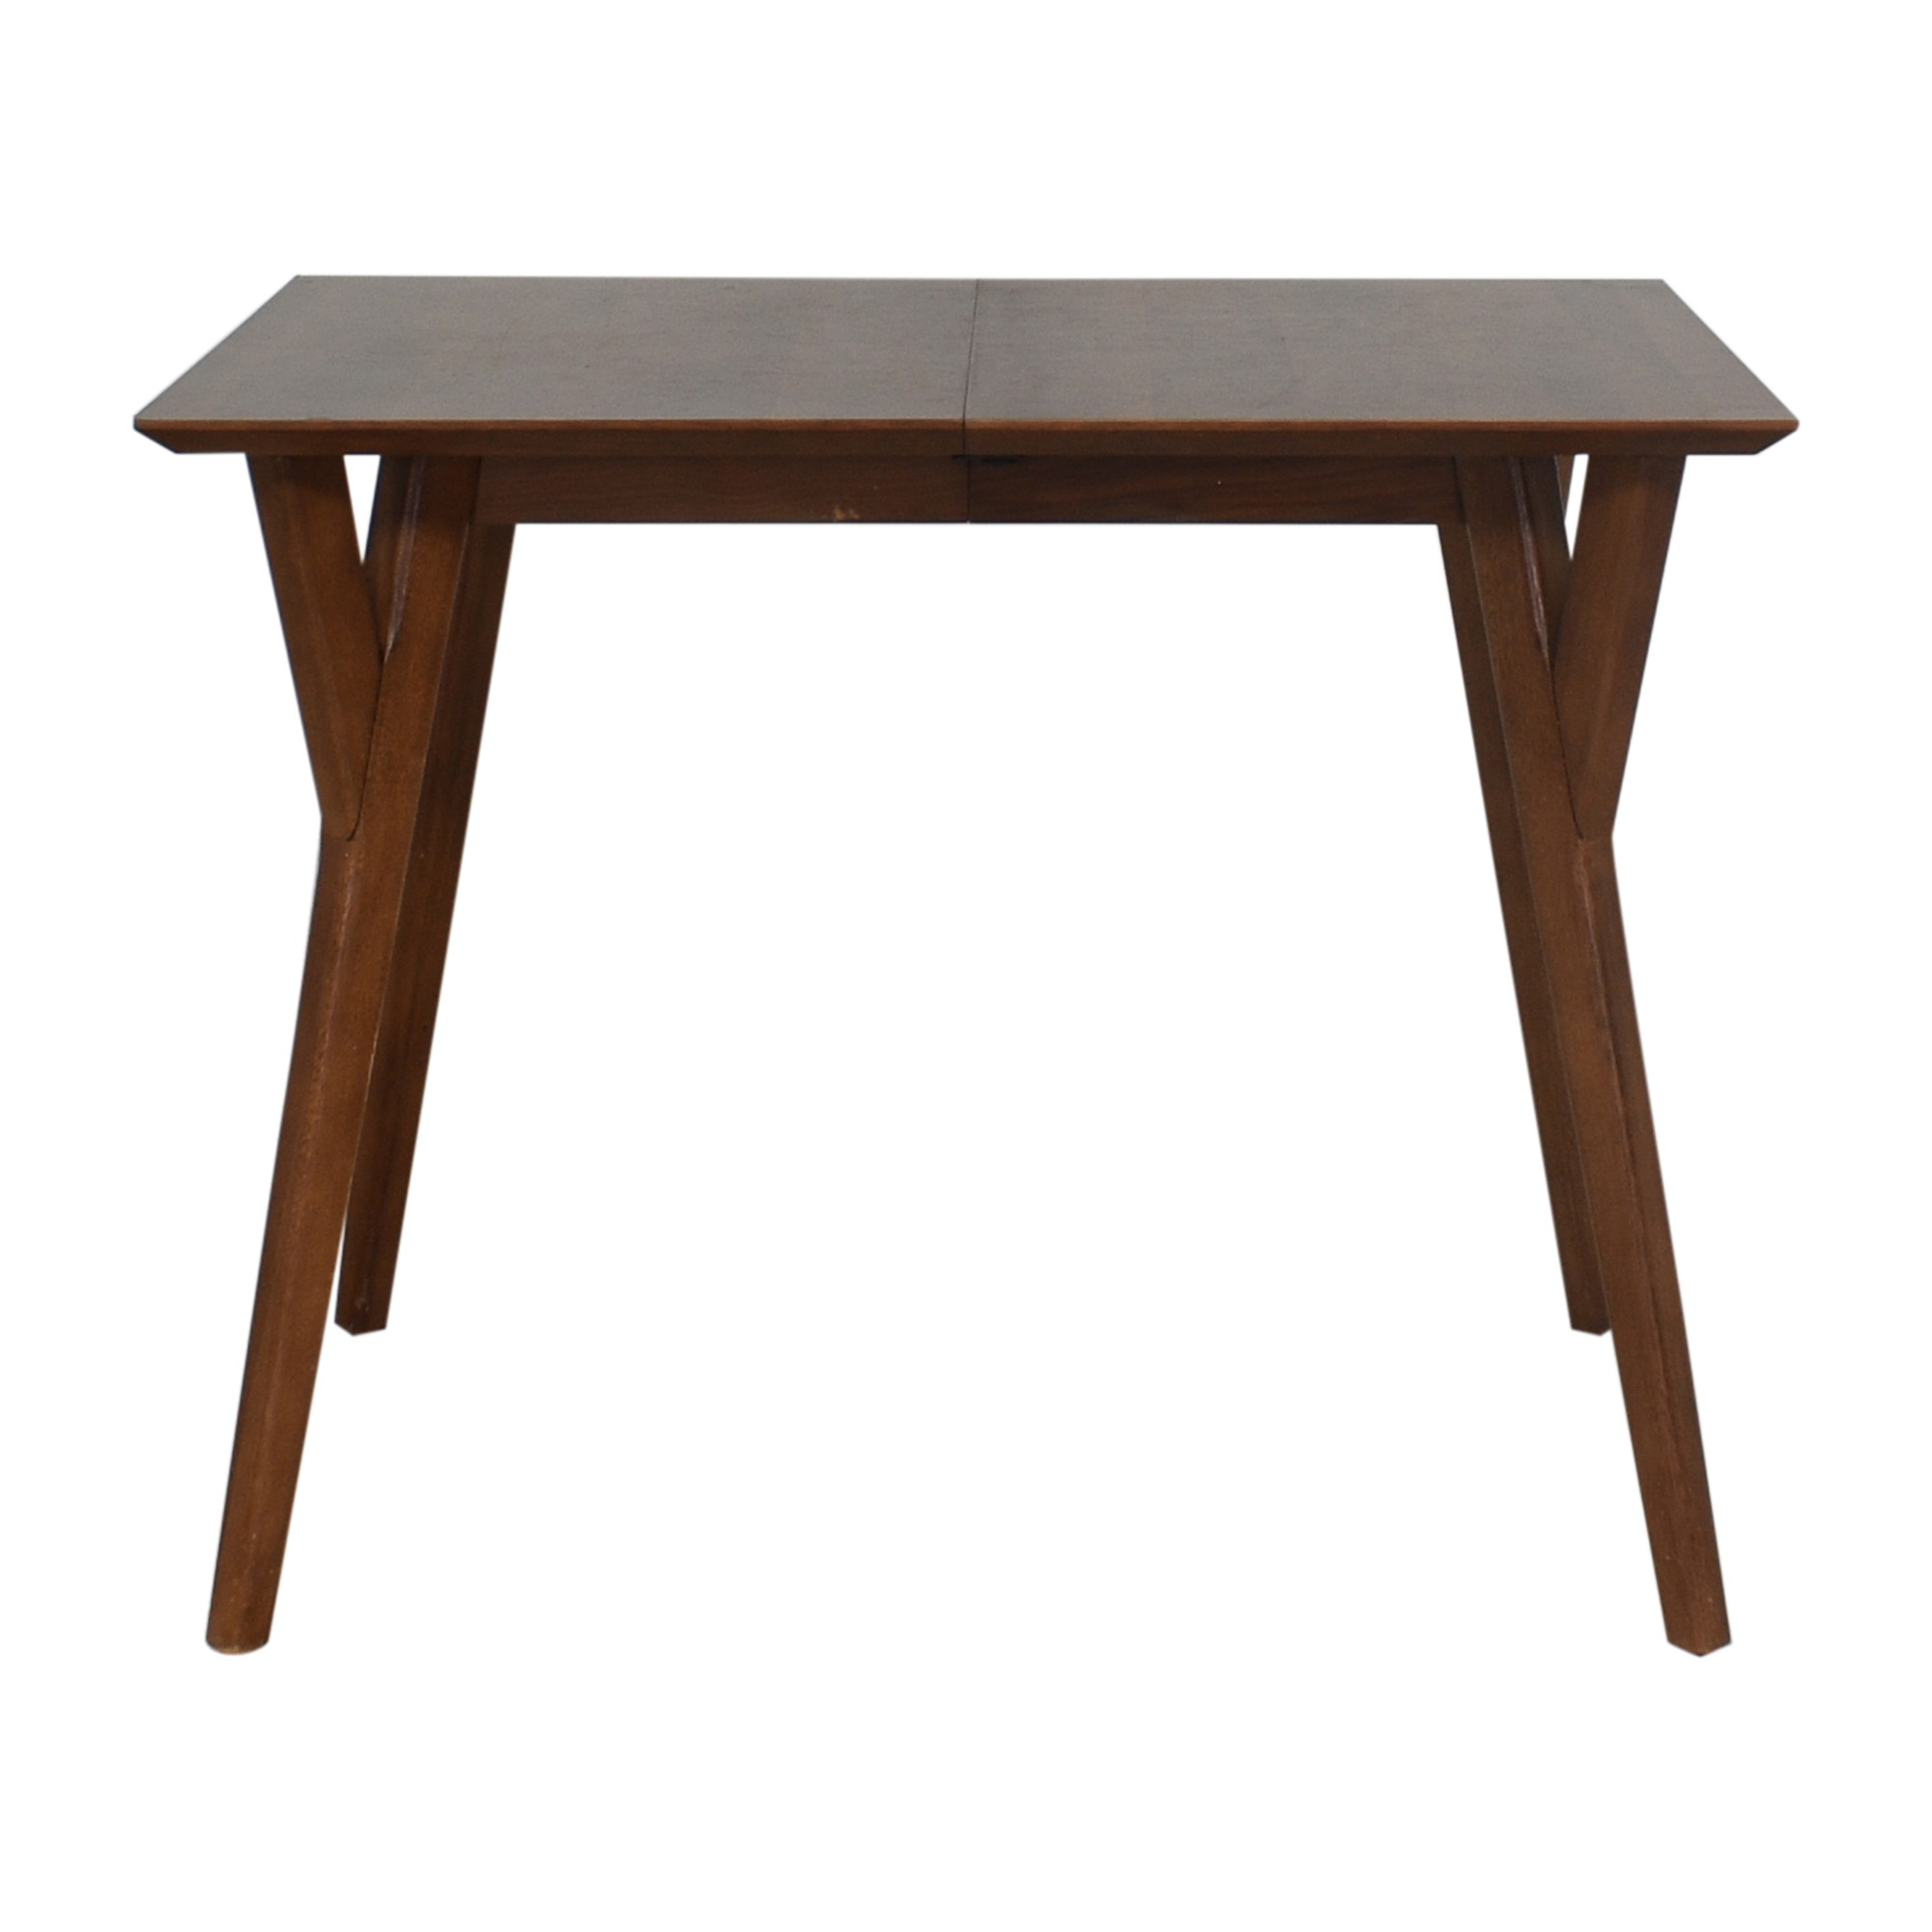 West Elm West Elm Mid-Century Expandable Dining Table price